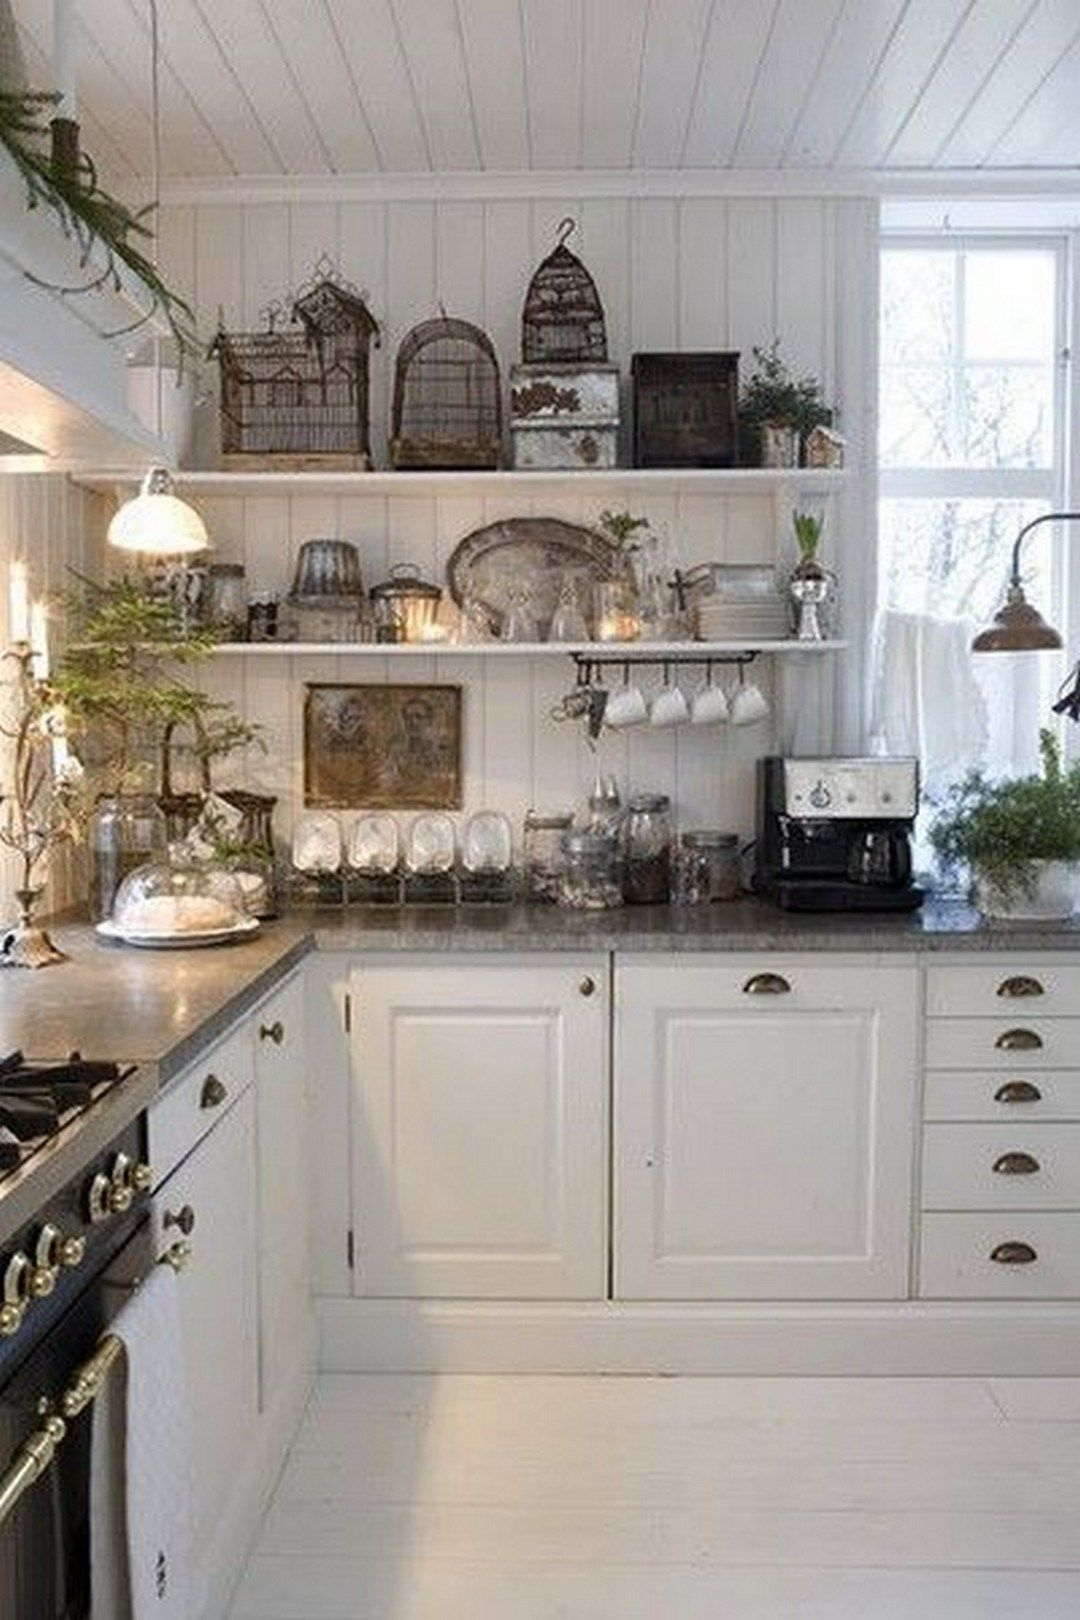 Country Kuechen 99 French Country Kitchen Modern Design Ideas 57 Kitchen